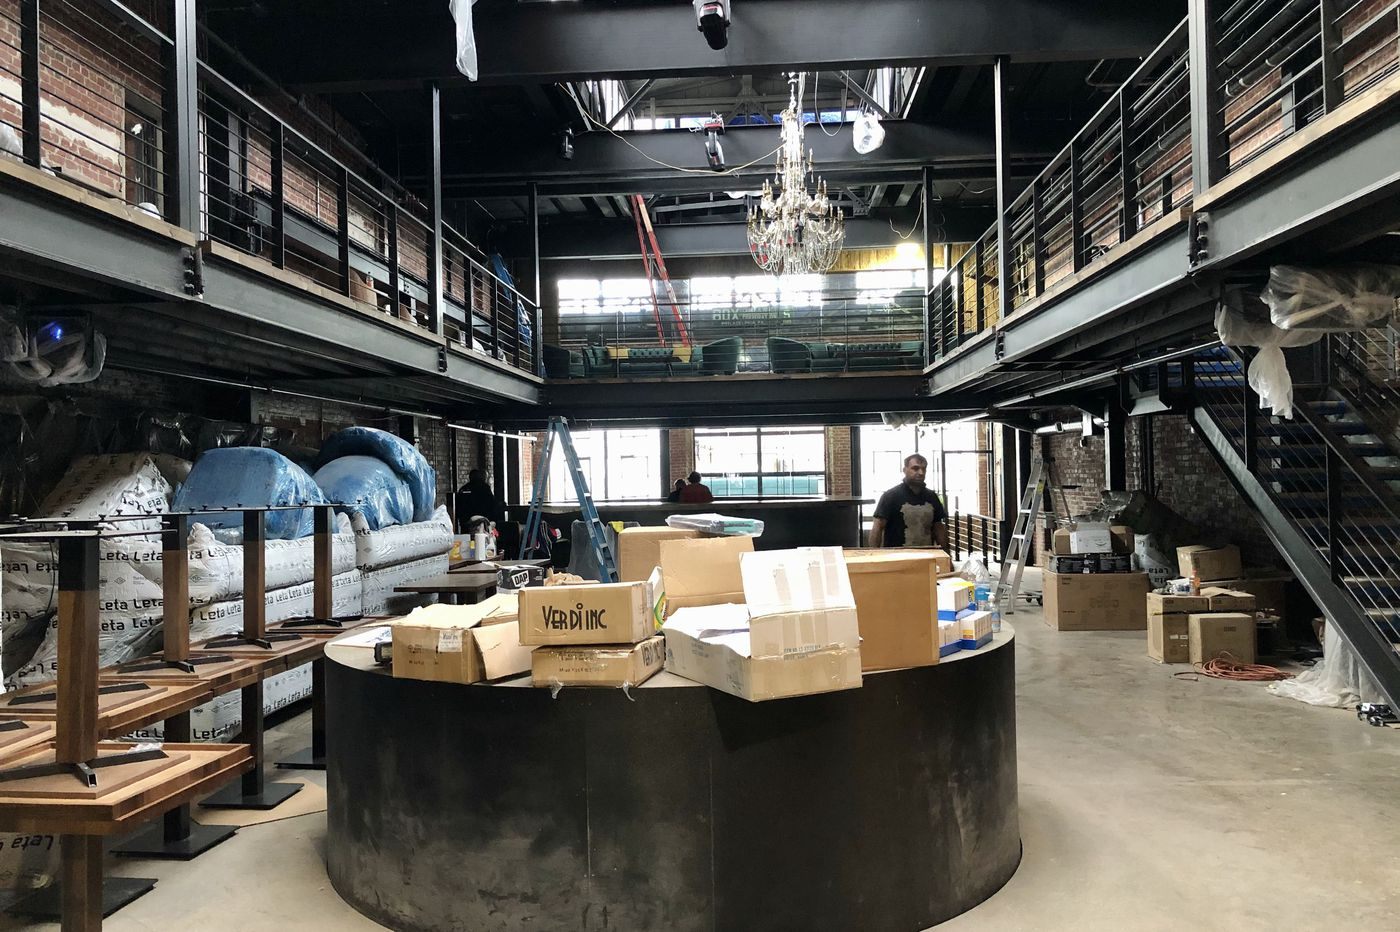 Early look at Fabrika, a 'modern cabaret' coming to Fishtown with food from Kanella's Konstantinos Pitsillides